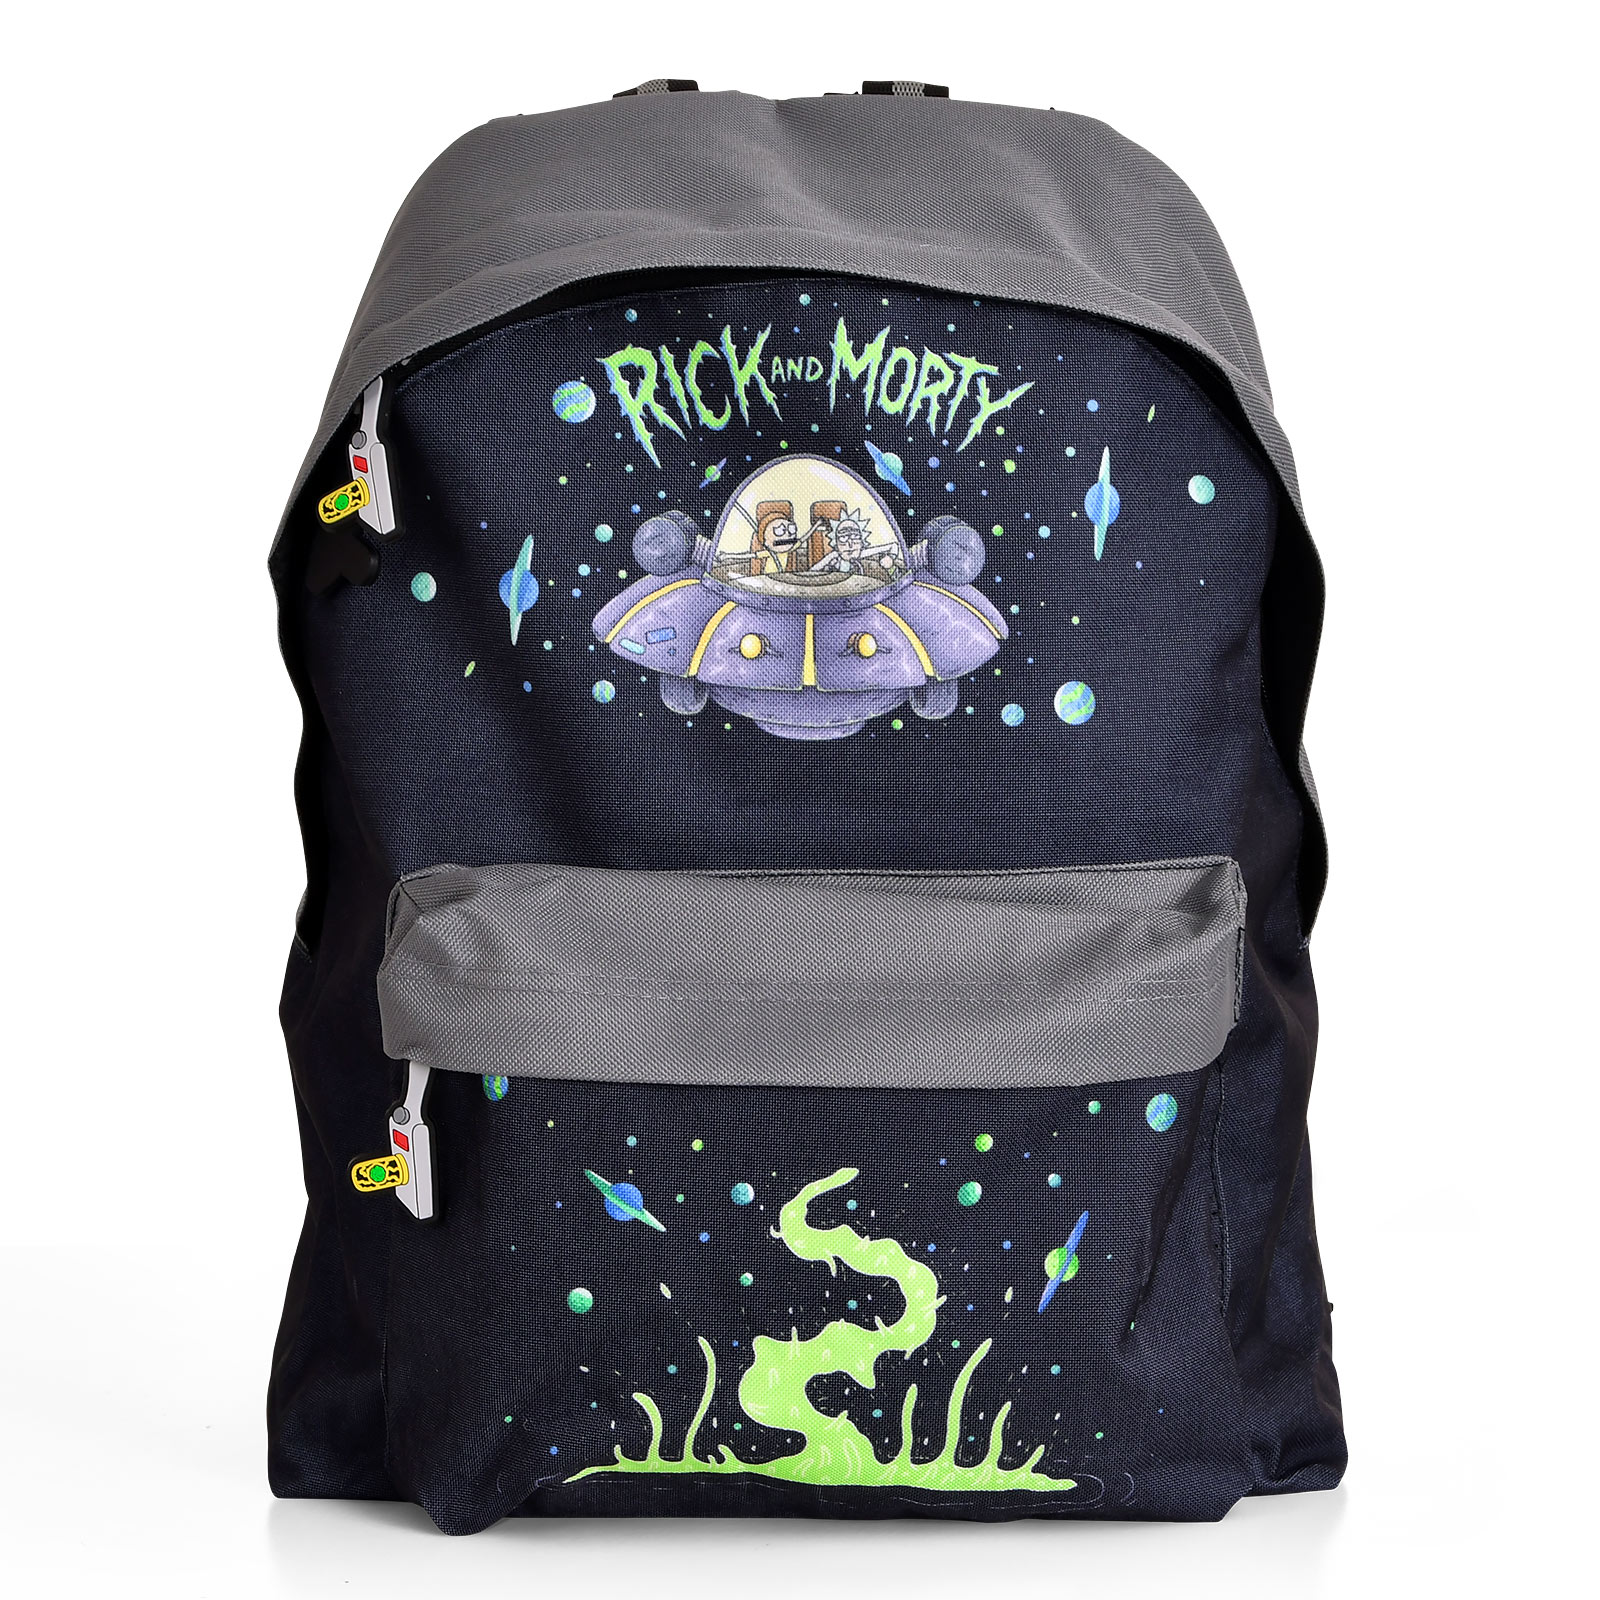 Rick and Morty - Space Cruiser Rucksack